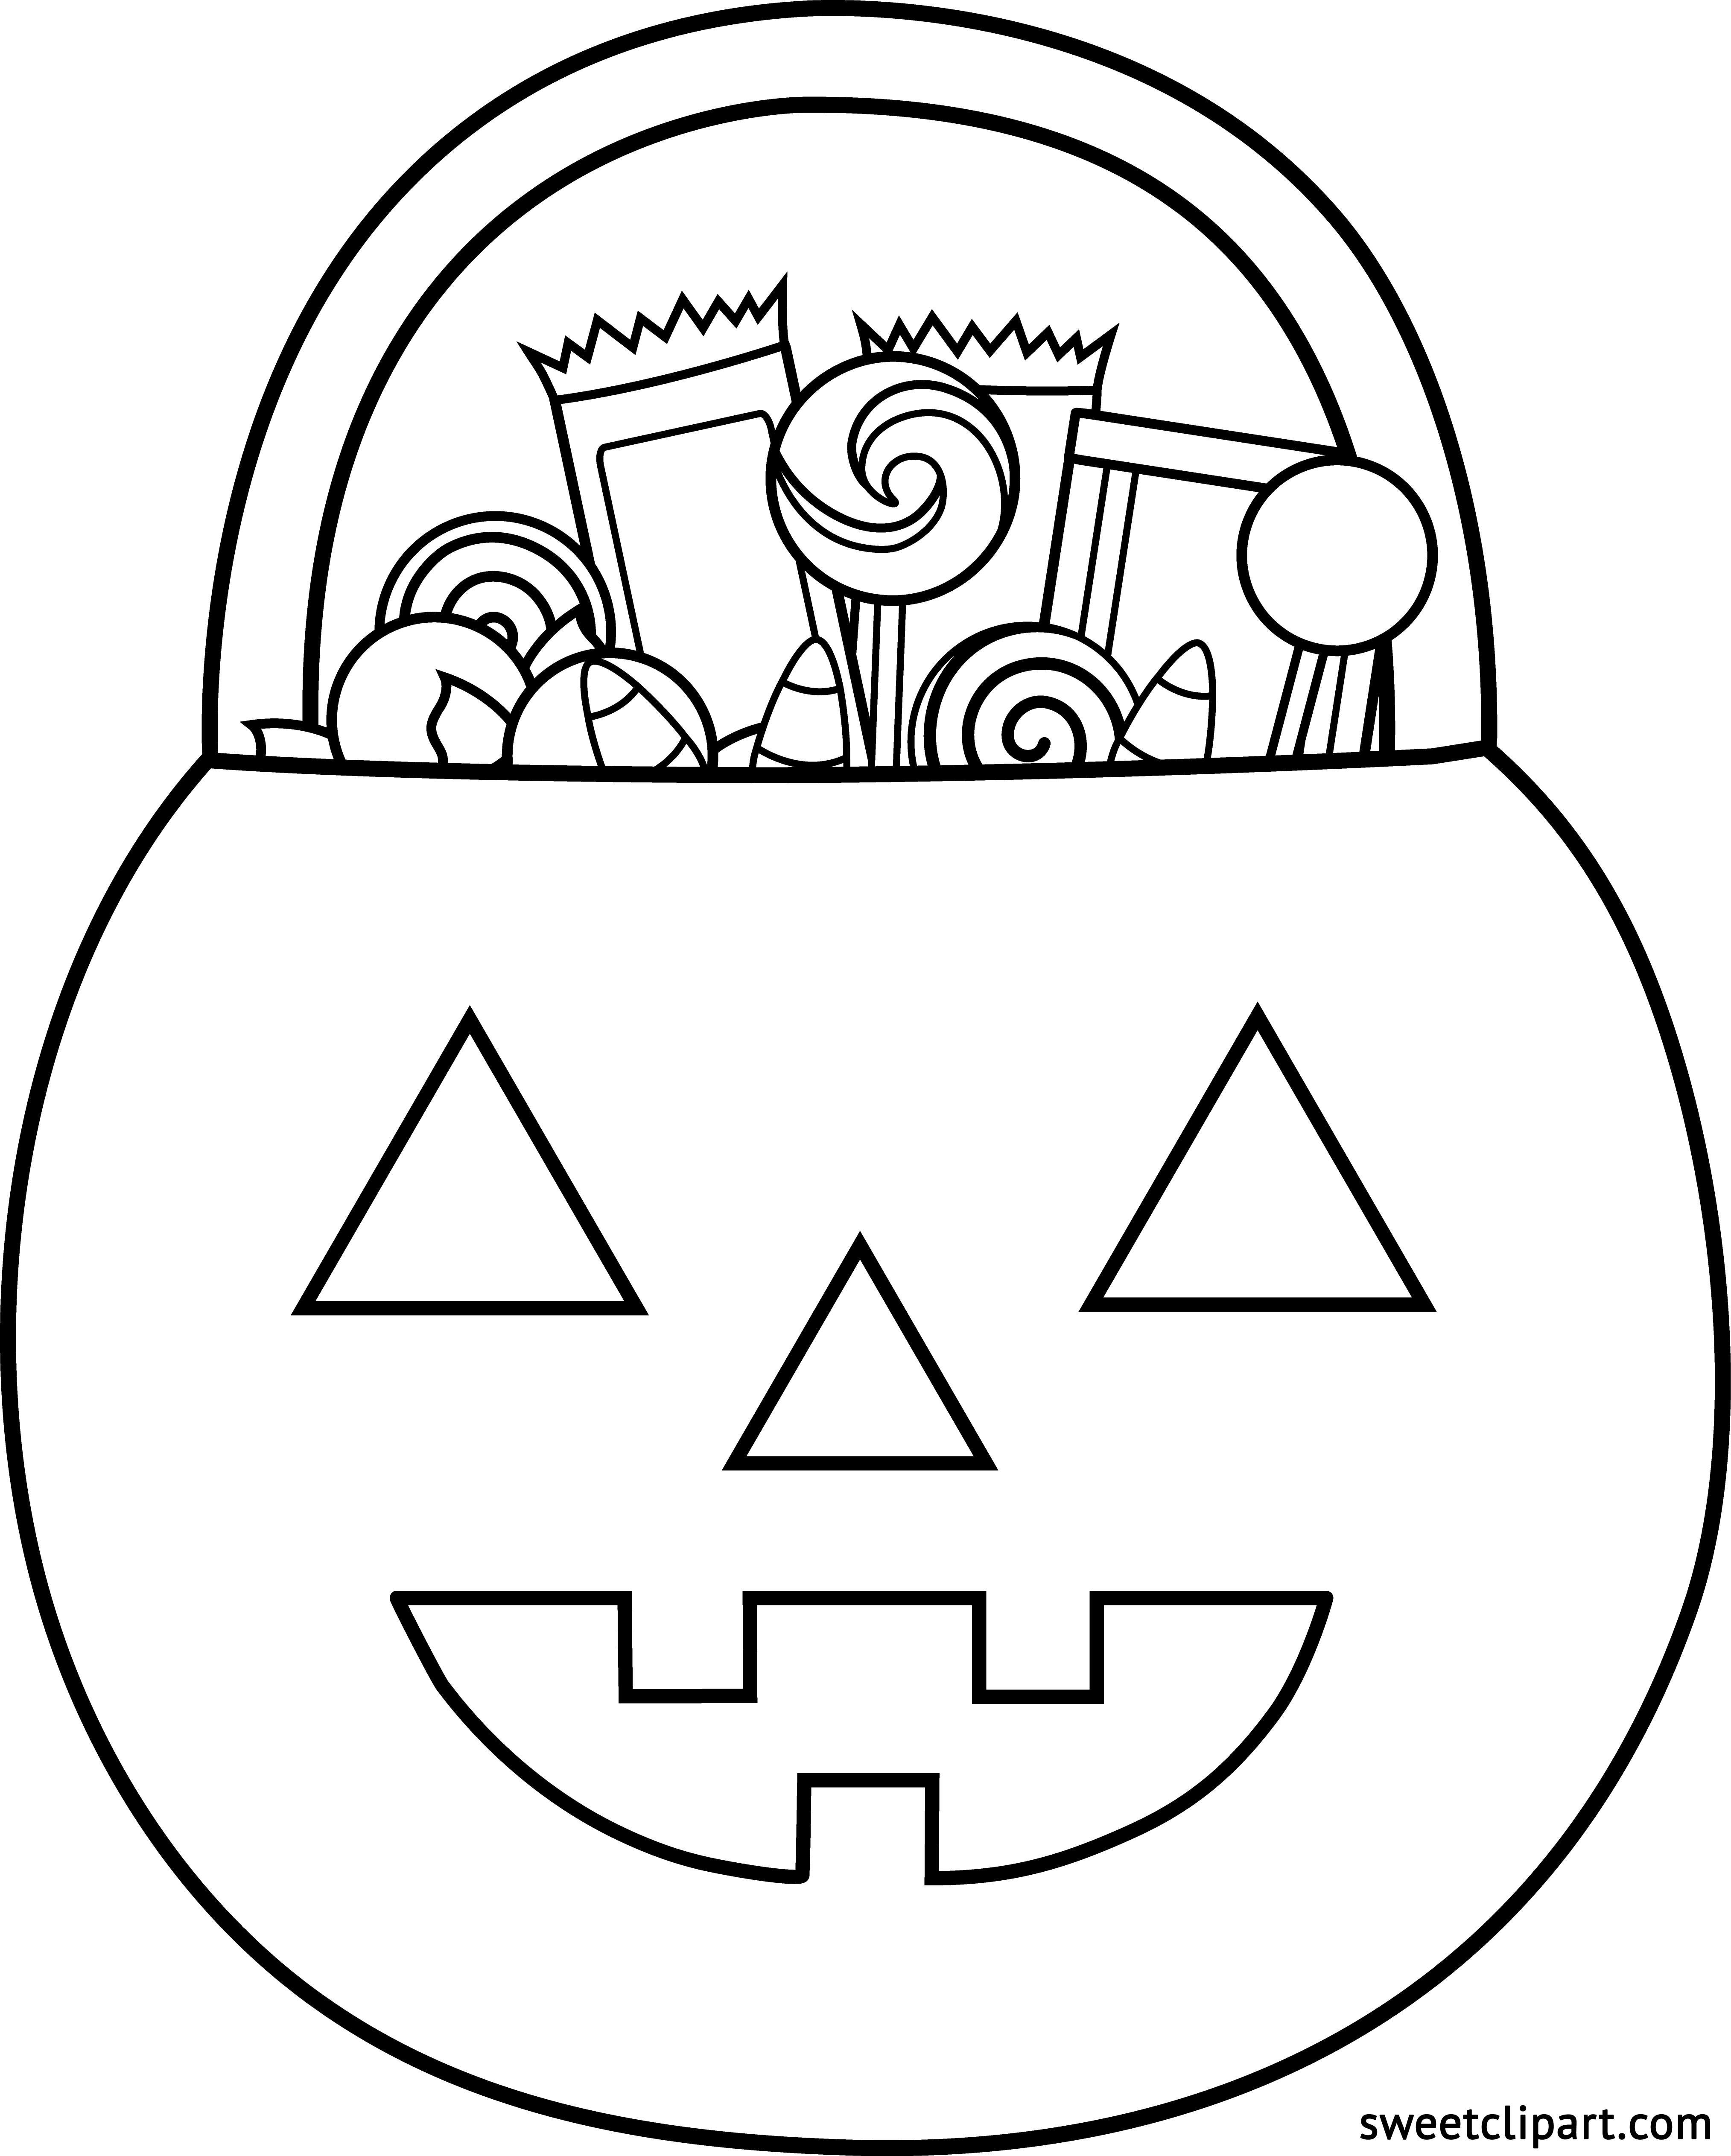 Mail clipart coloring sheet. Halloween trick or treat